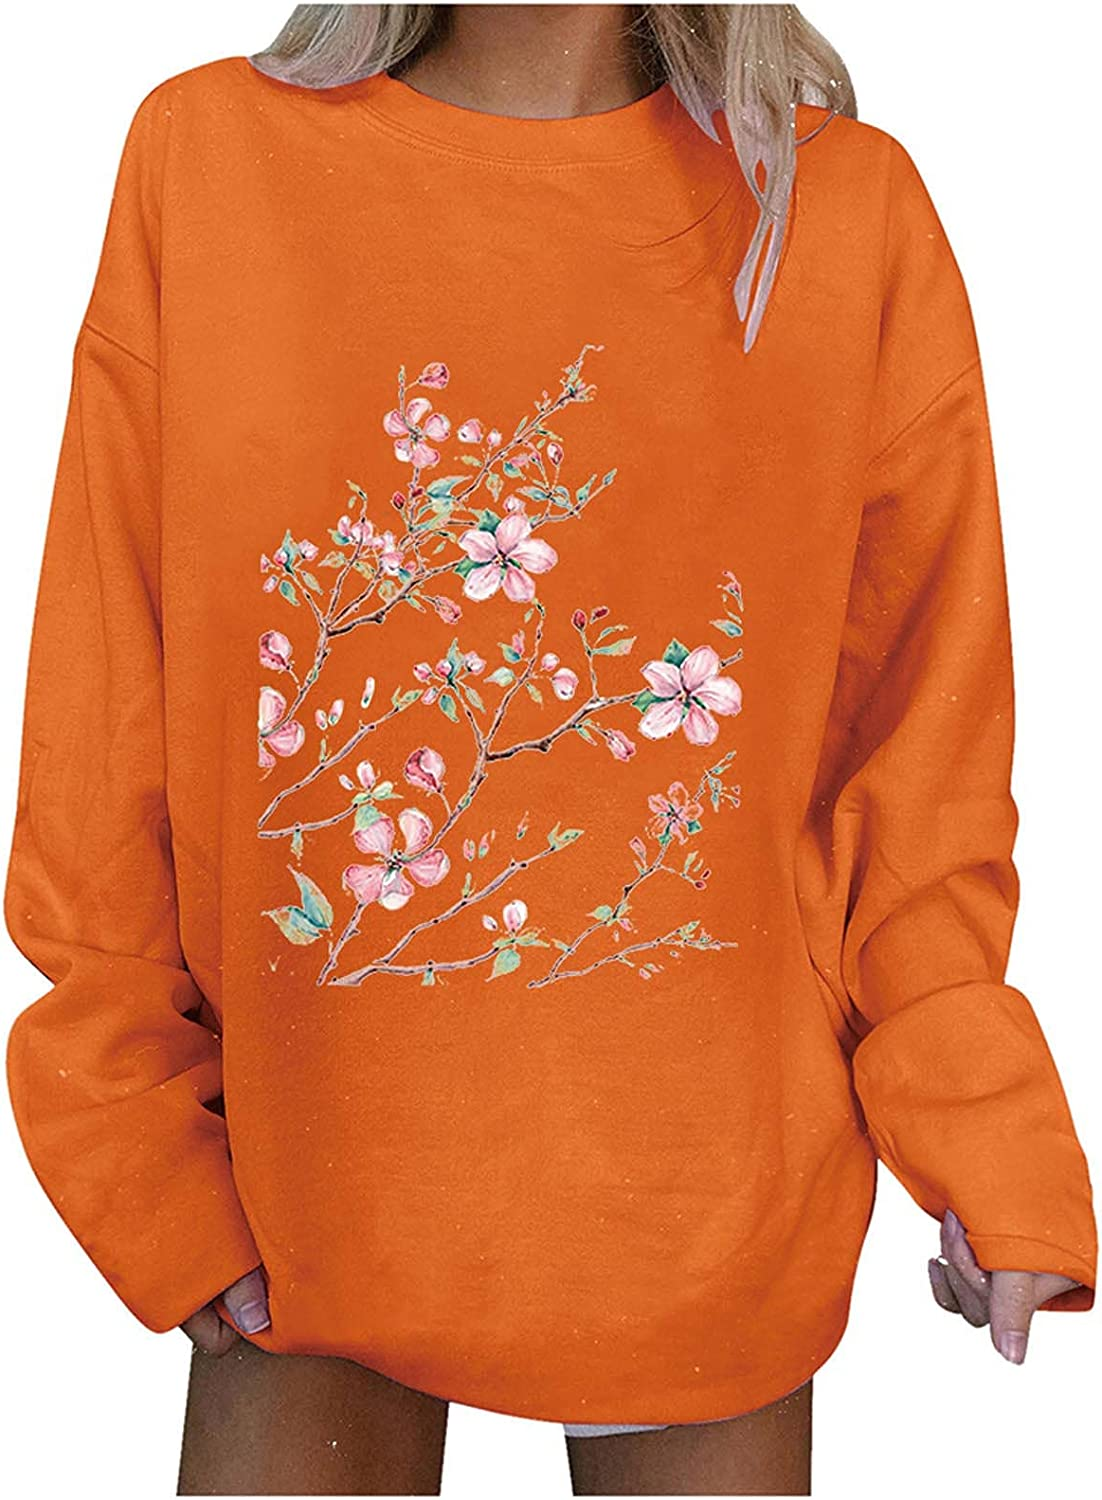 Auwer Women's Floral Printed Long Sleeve Sweatshirt Round Neck Loose T Shirts